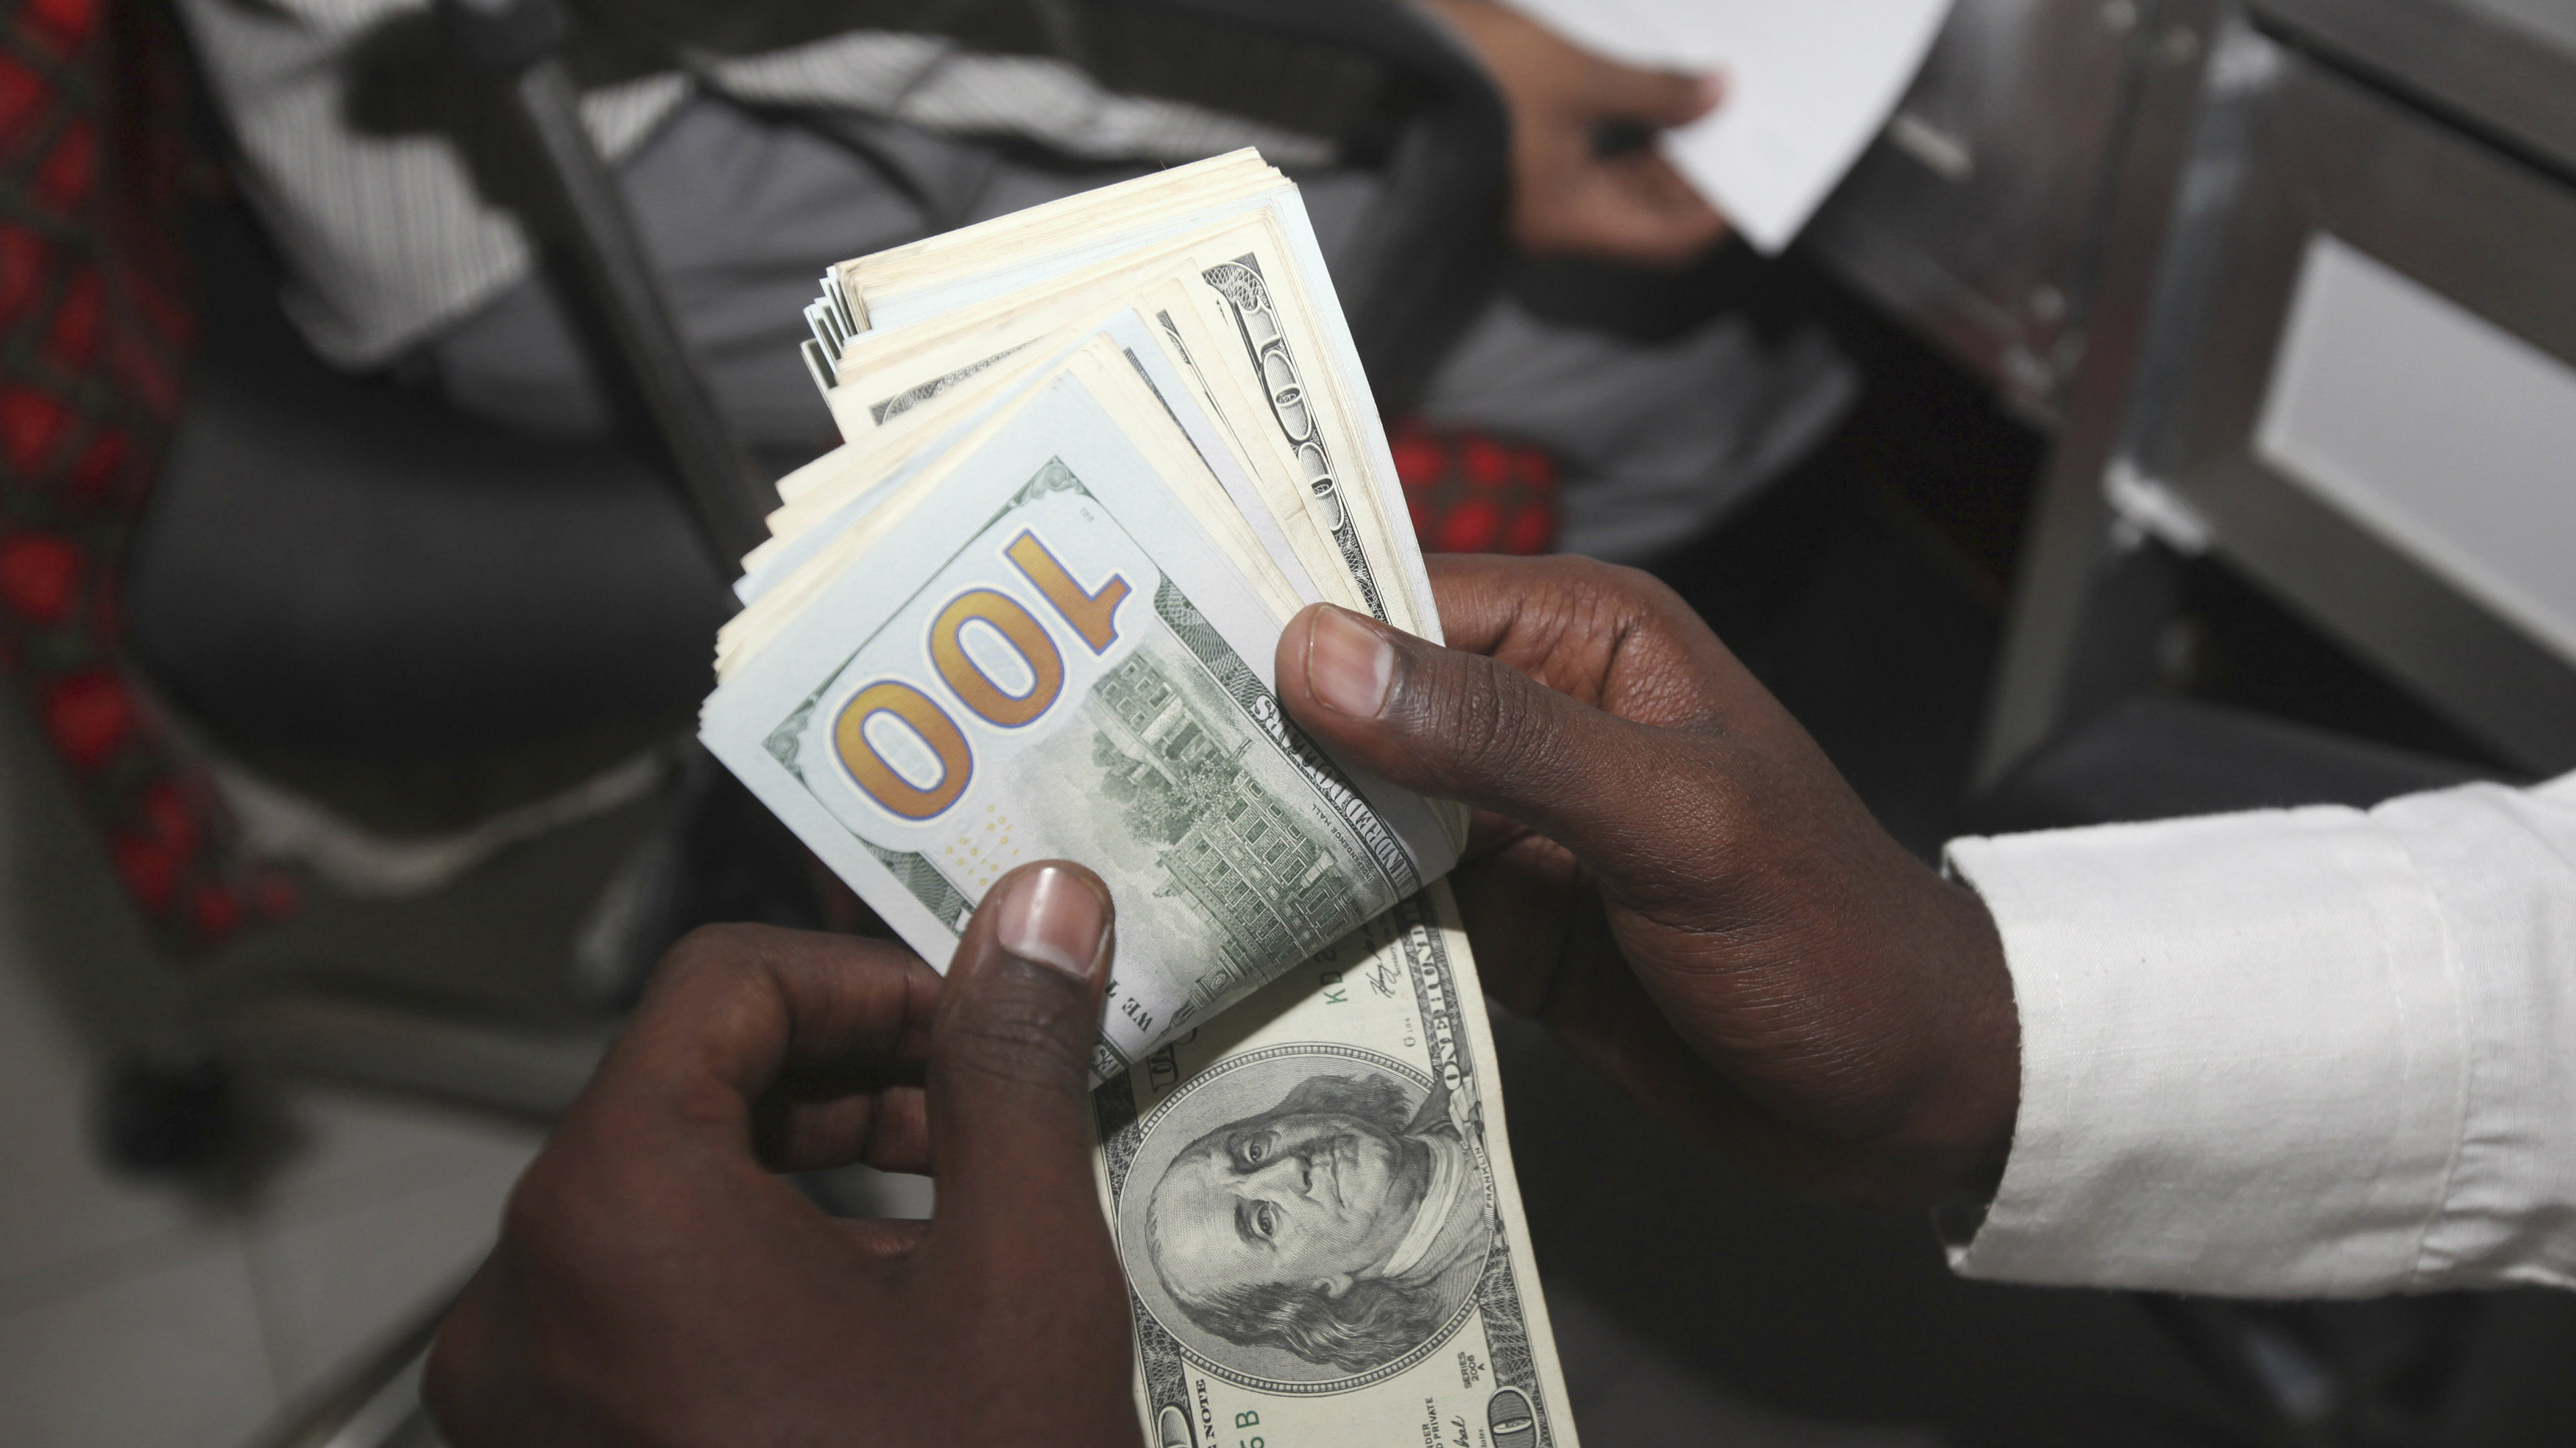 A teller counts U.S. notes at a transfer office in Mogadishu